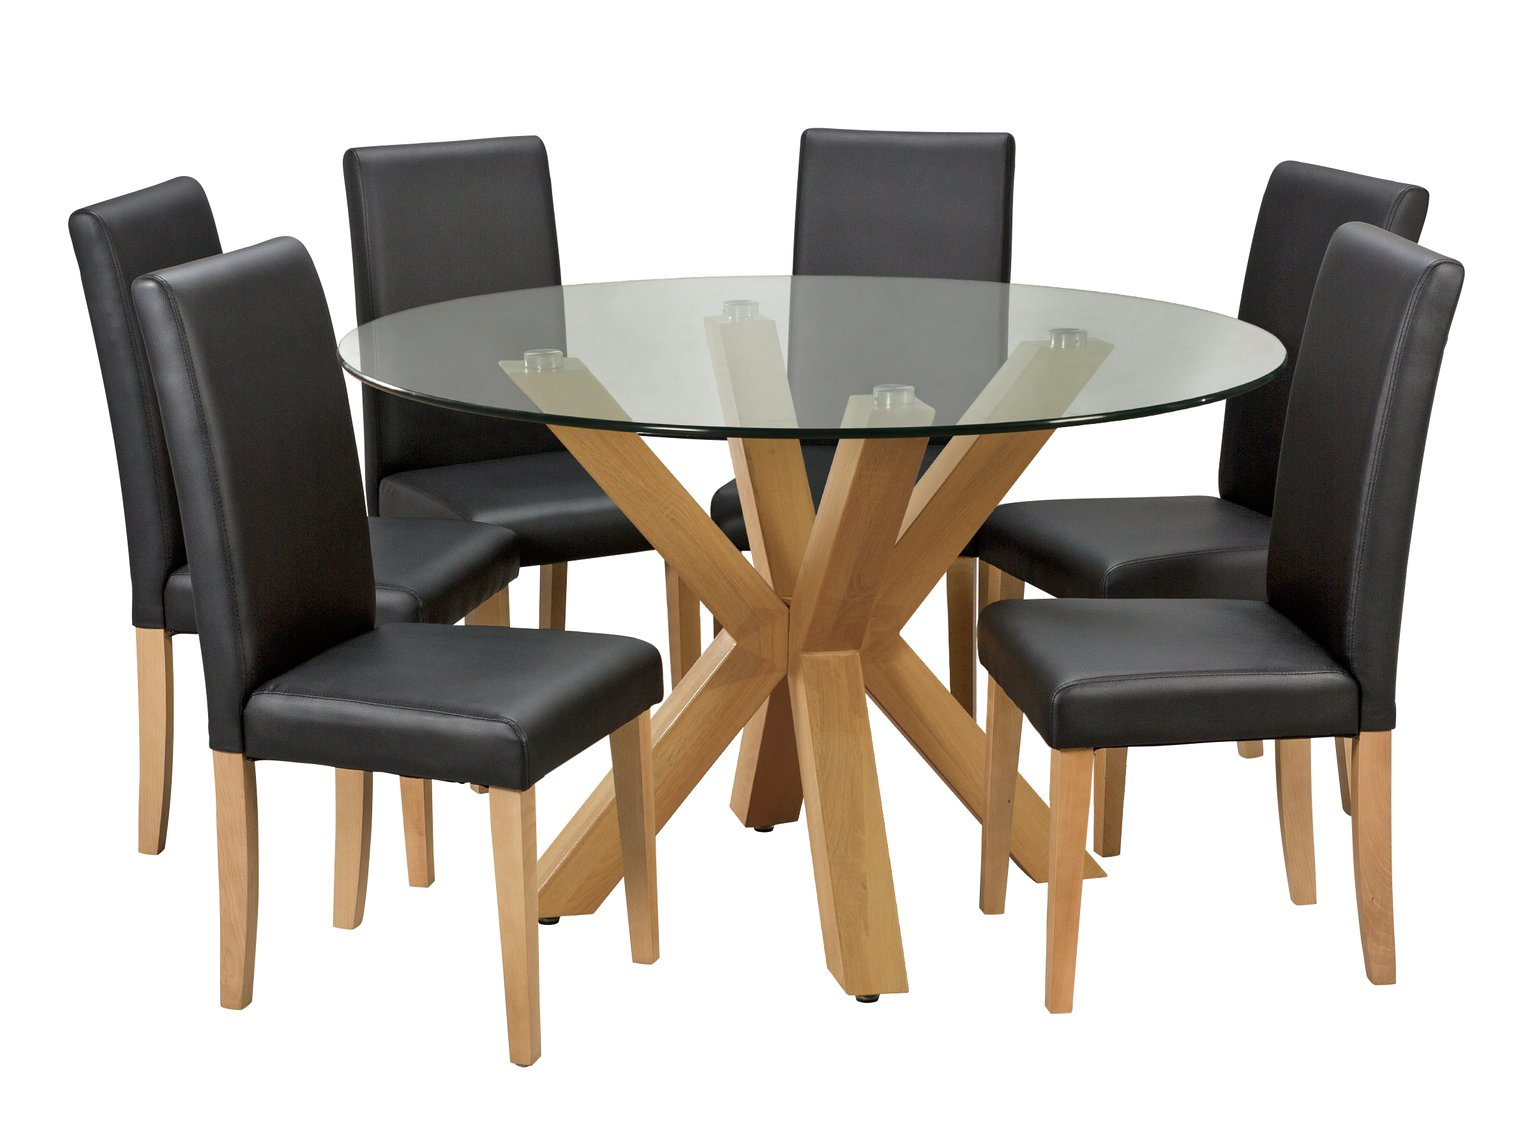 Argos Home Alden Glass Round Table & 6 Chairs review